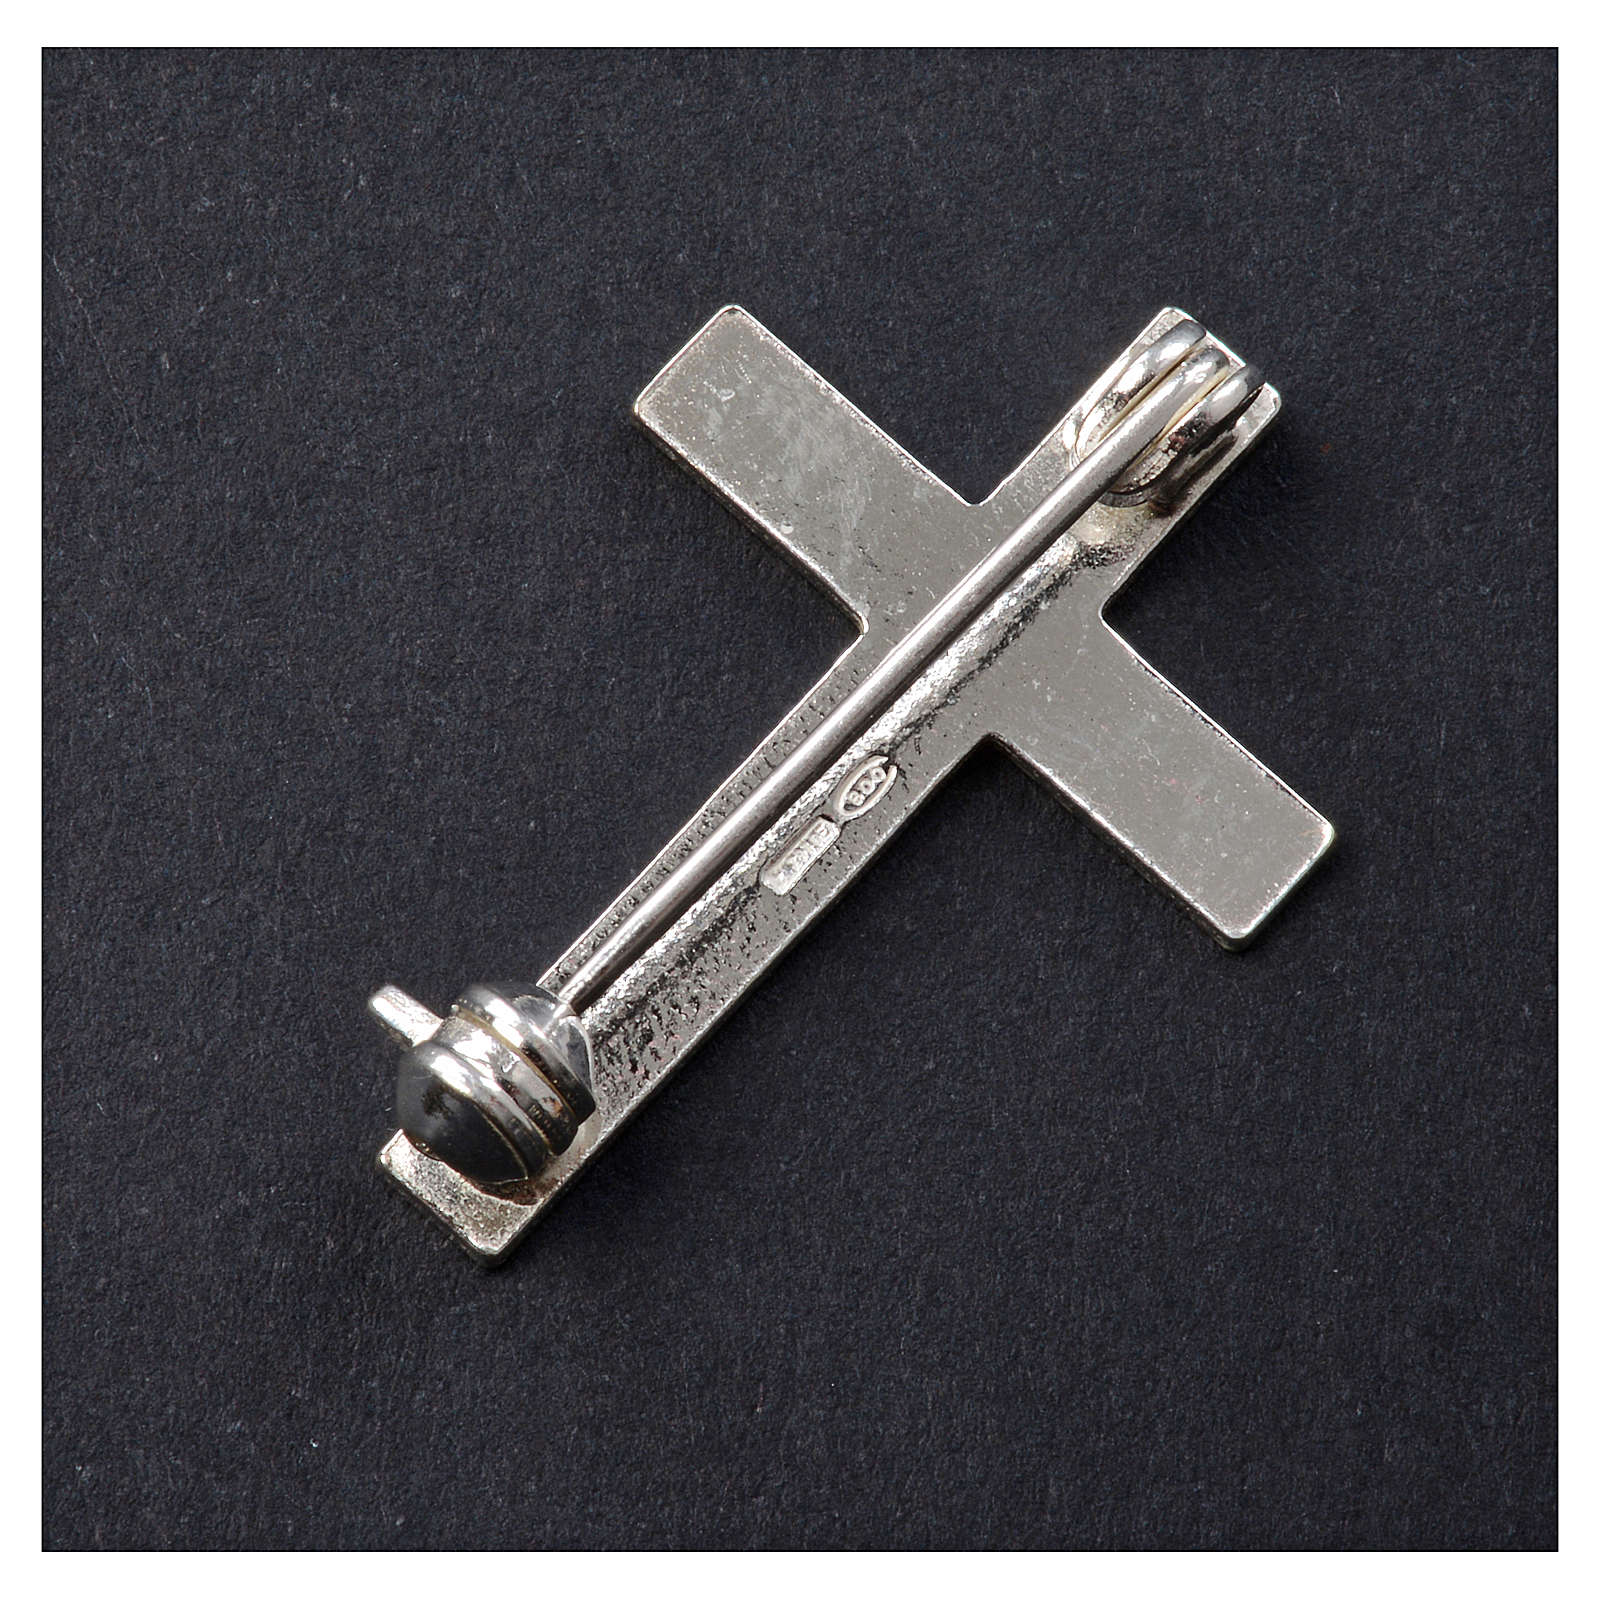 Clergyman cross pin in 925 silver 4